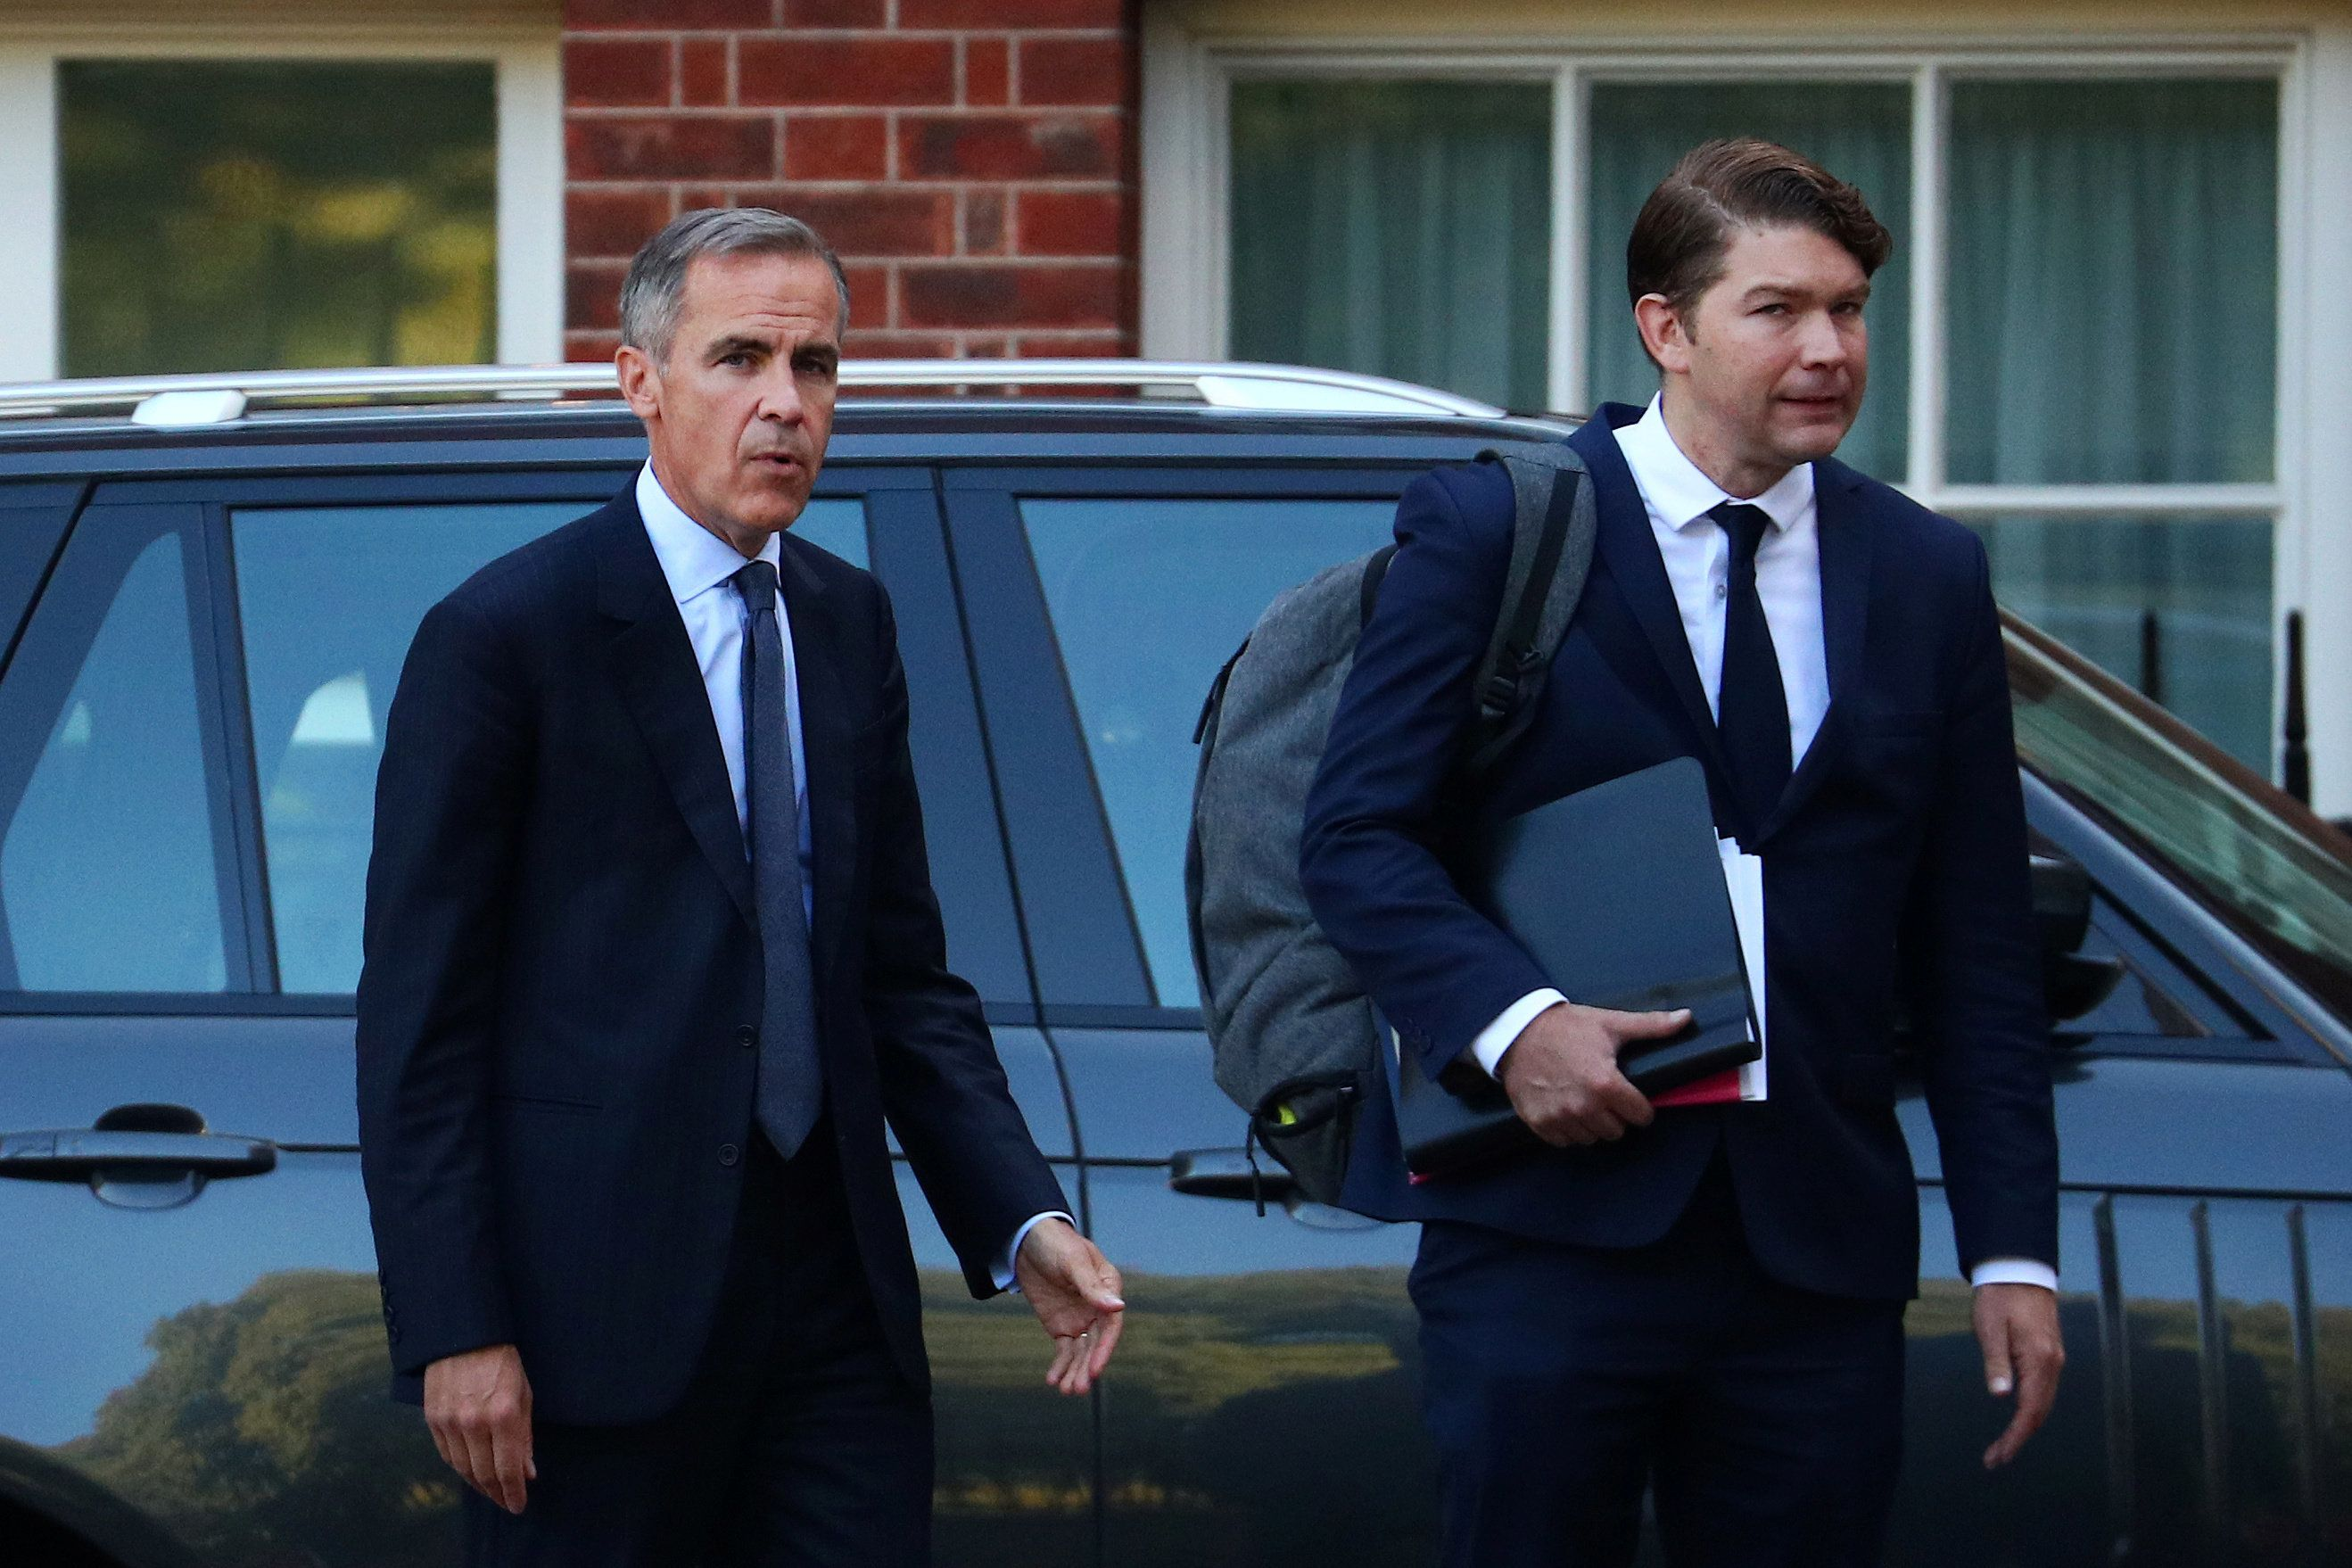 'No Deal' Brexit 'Disaster' Fears As Mark Carney Warns House Prices Could Drop By A